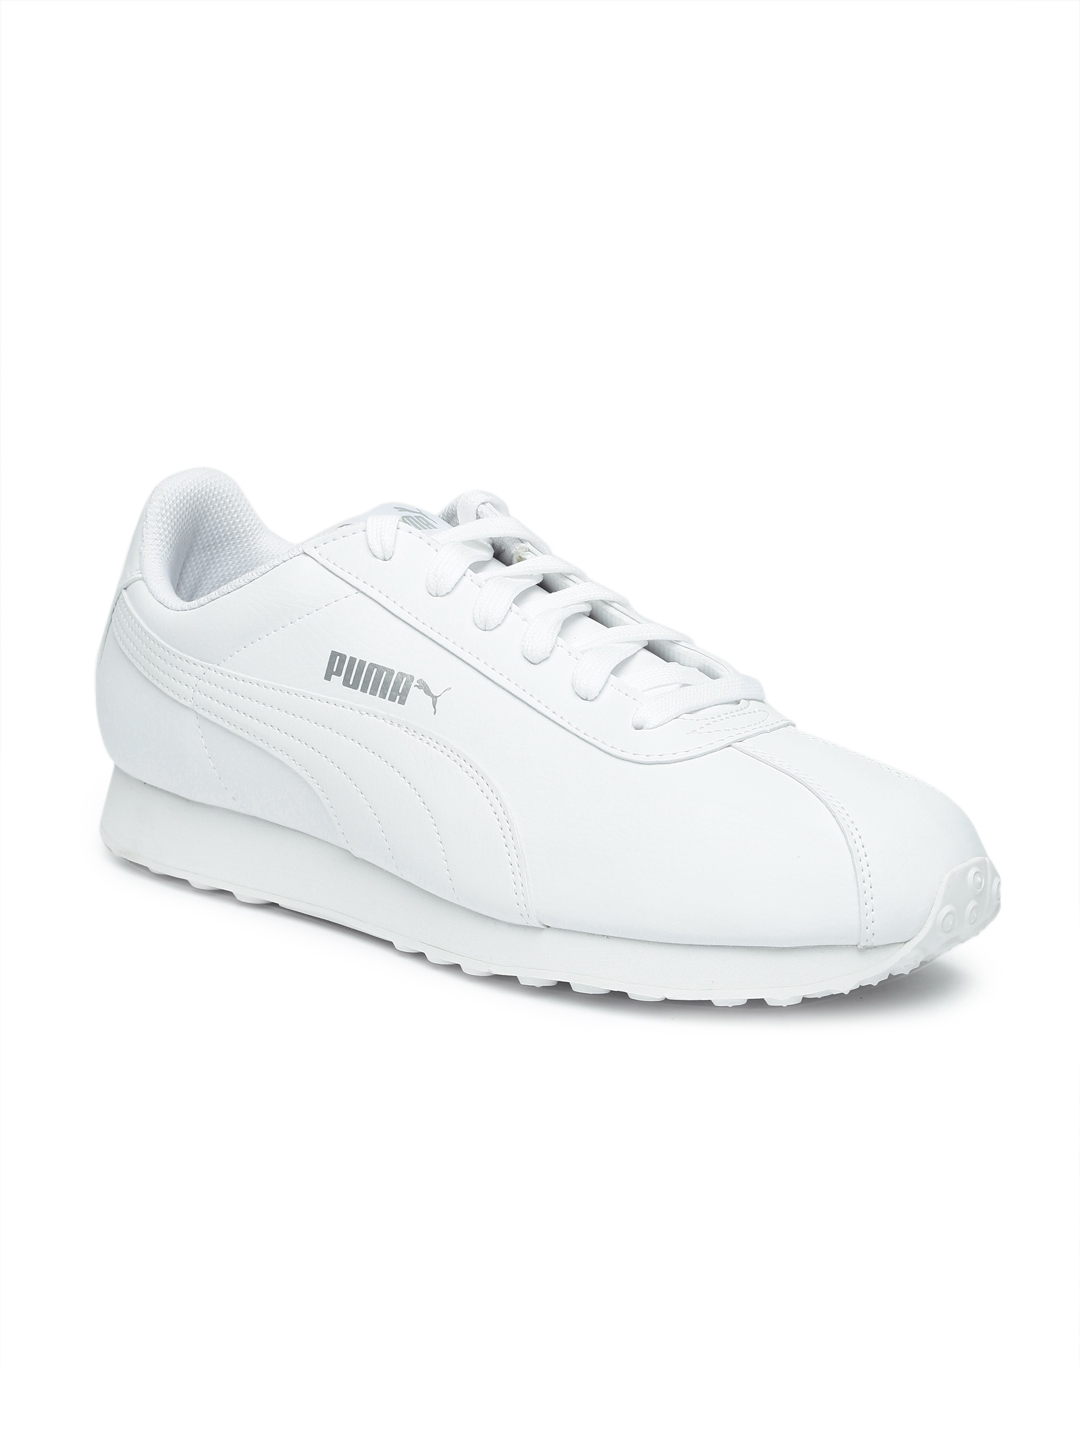 bccbf547968a Buy Puma Unisex White Turin Sneakers - Casual Shoes for Unisex ...